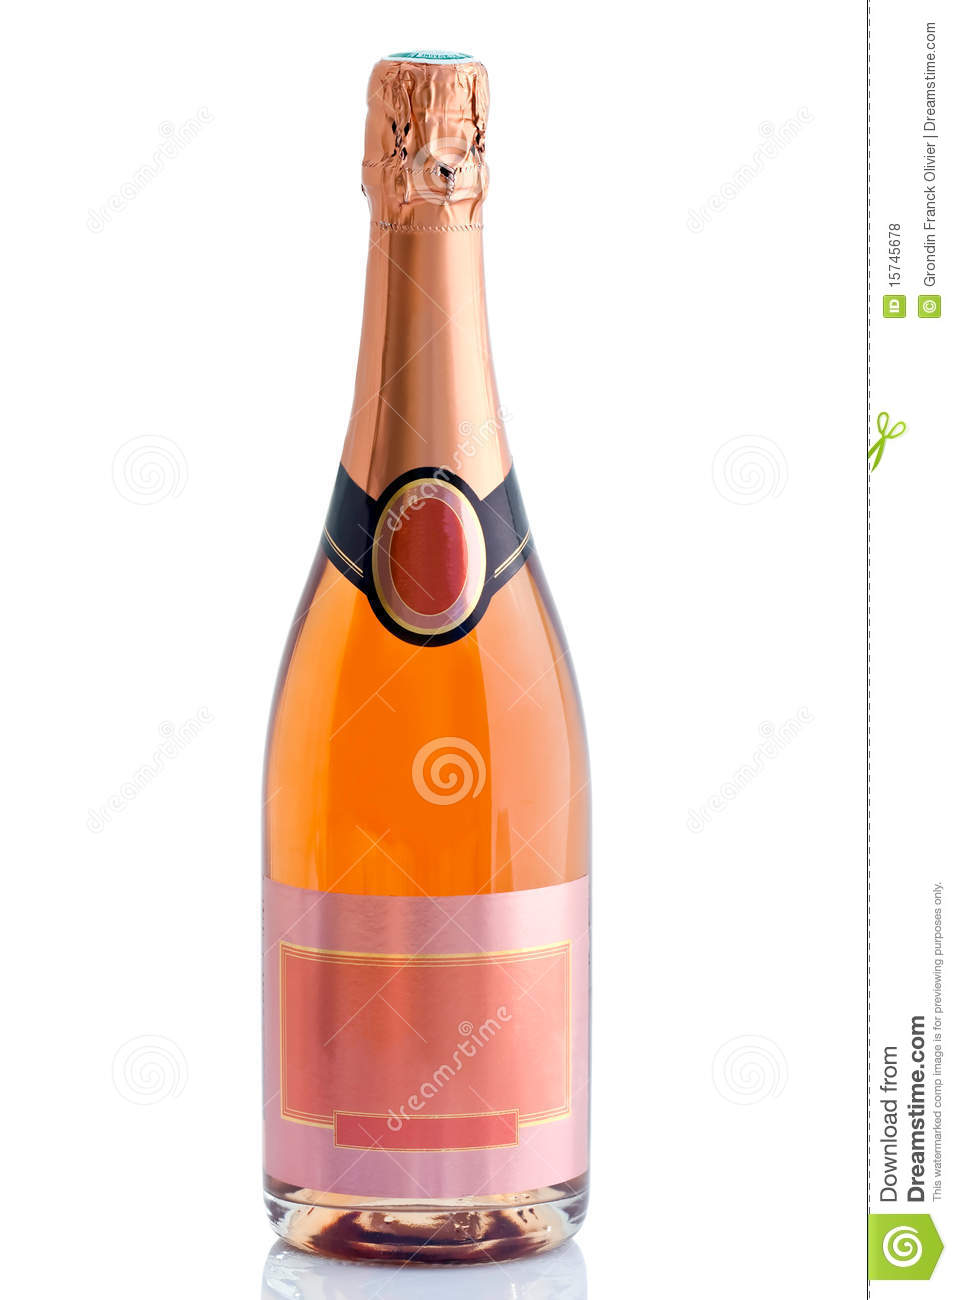 Fles champagne